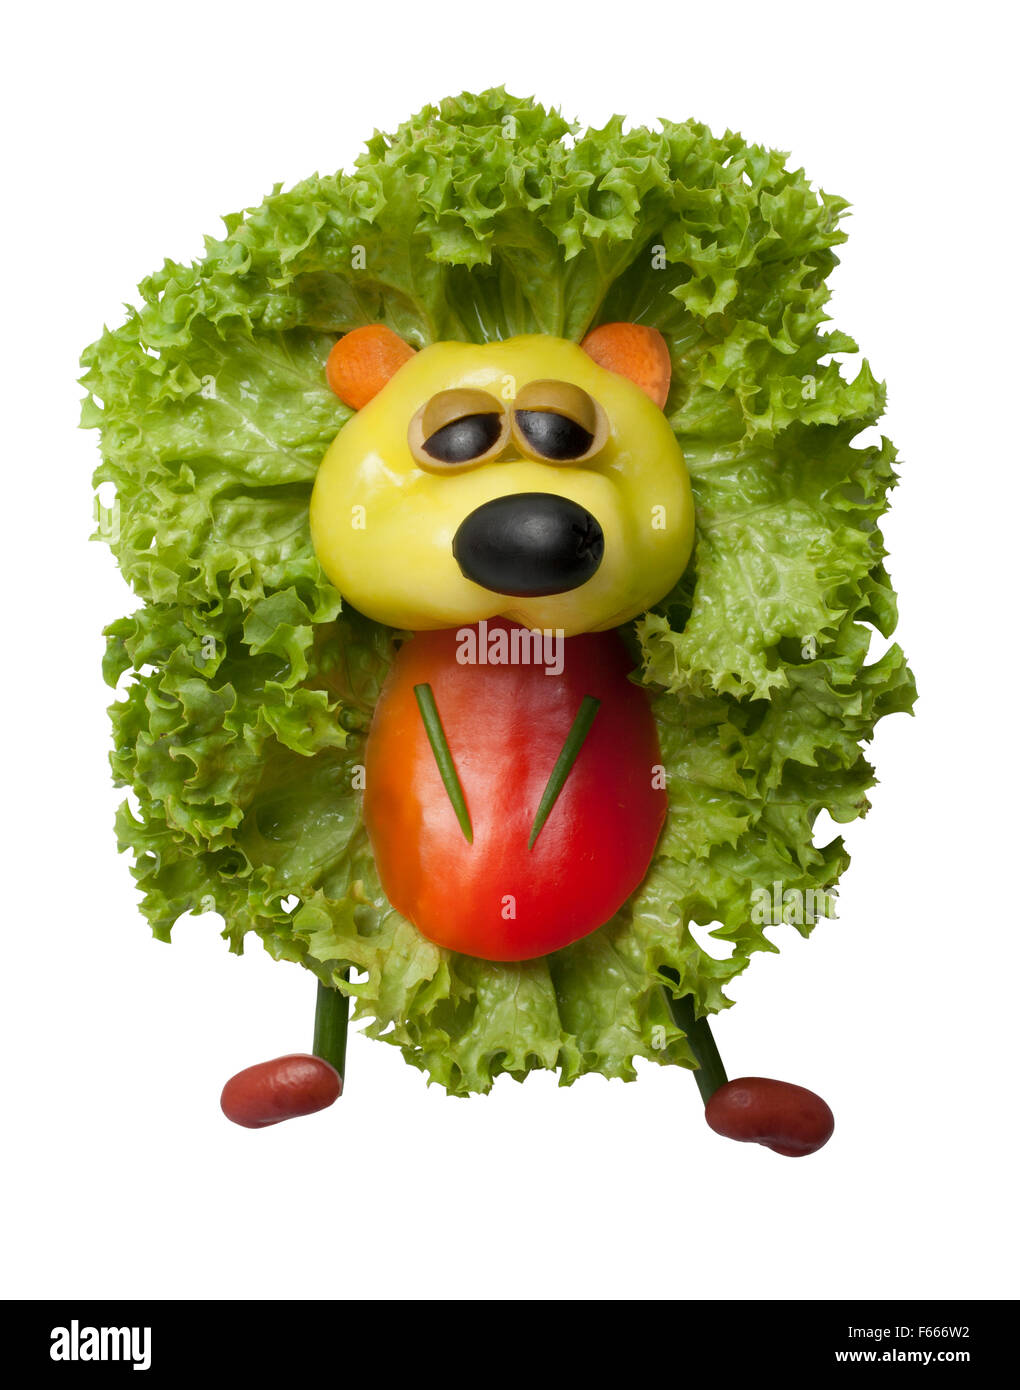 Funny hedgehog made of pepper and salad - Stock Image